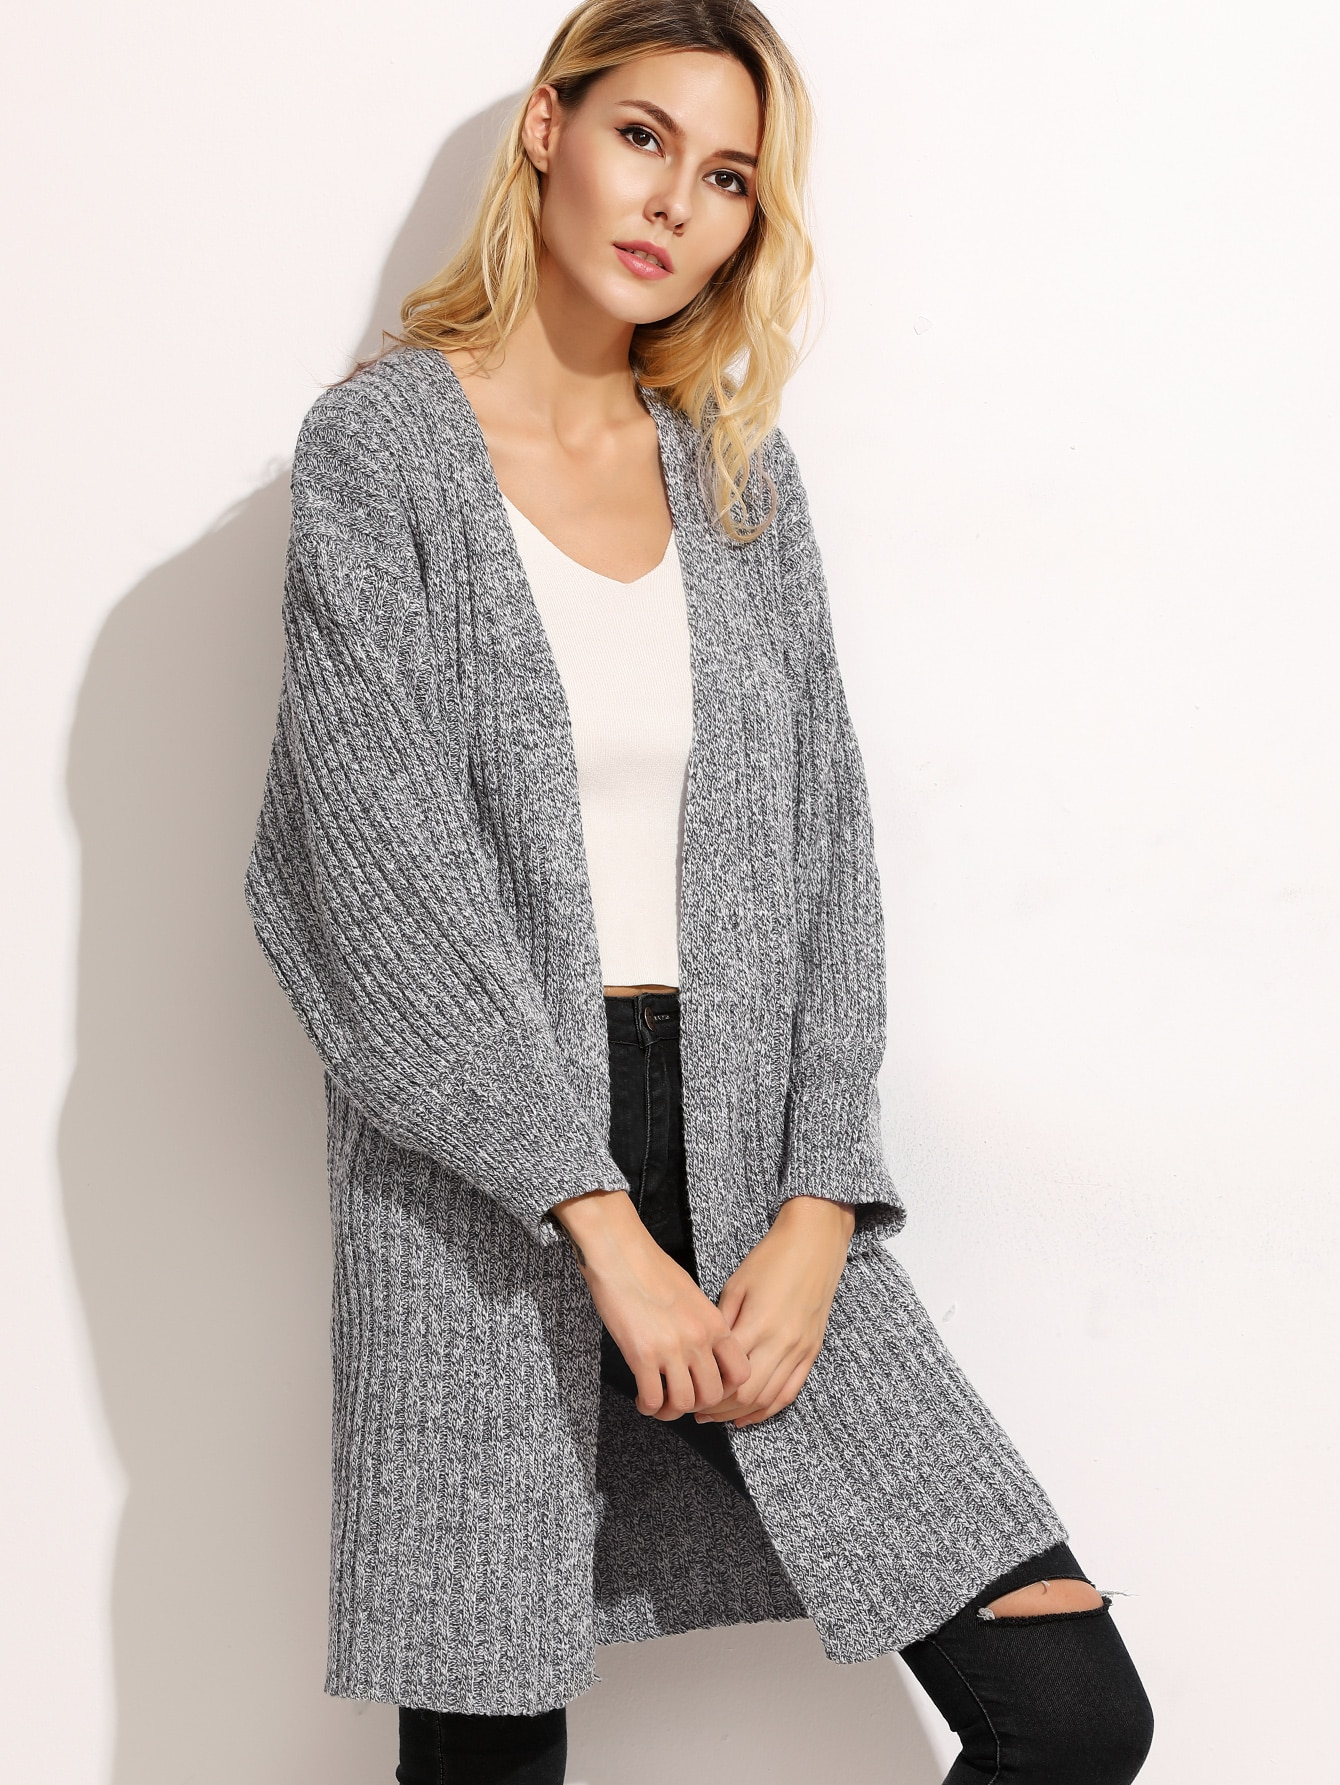 Heather Grey Drop Shoulder Ribbed CardiganHeather Grey Drop Shoulder Ribbed Cardigan<br><br>color: Grey<br>size: one-size